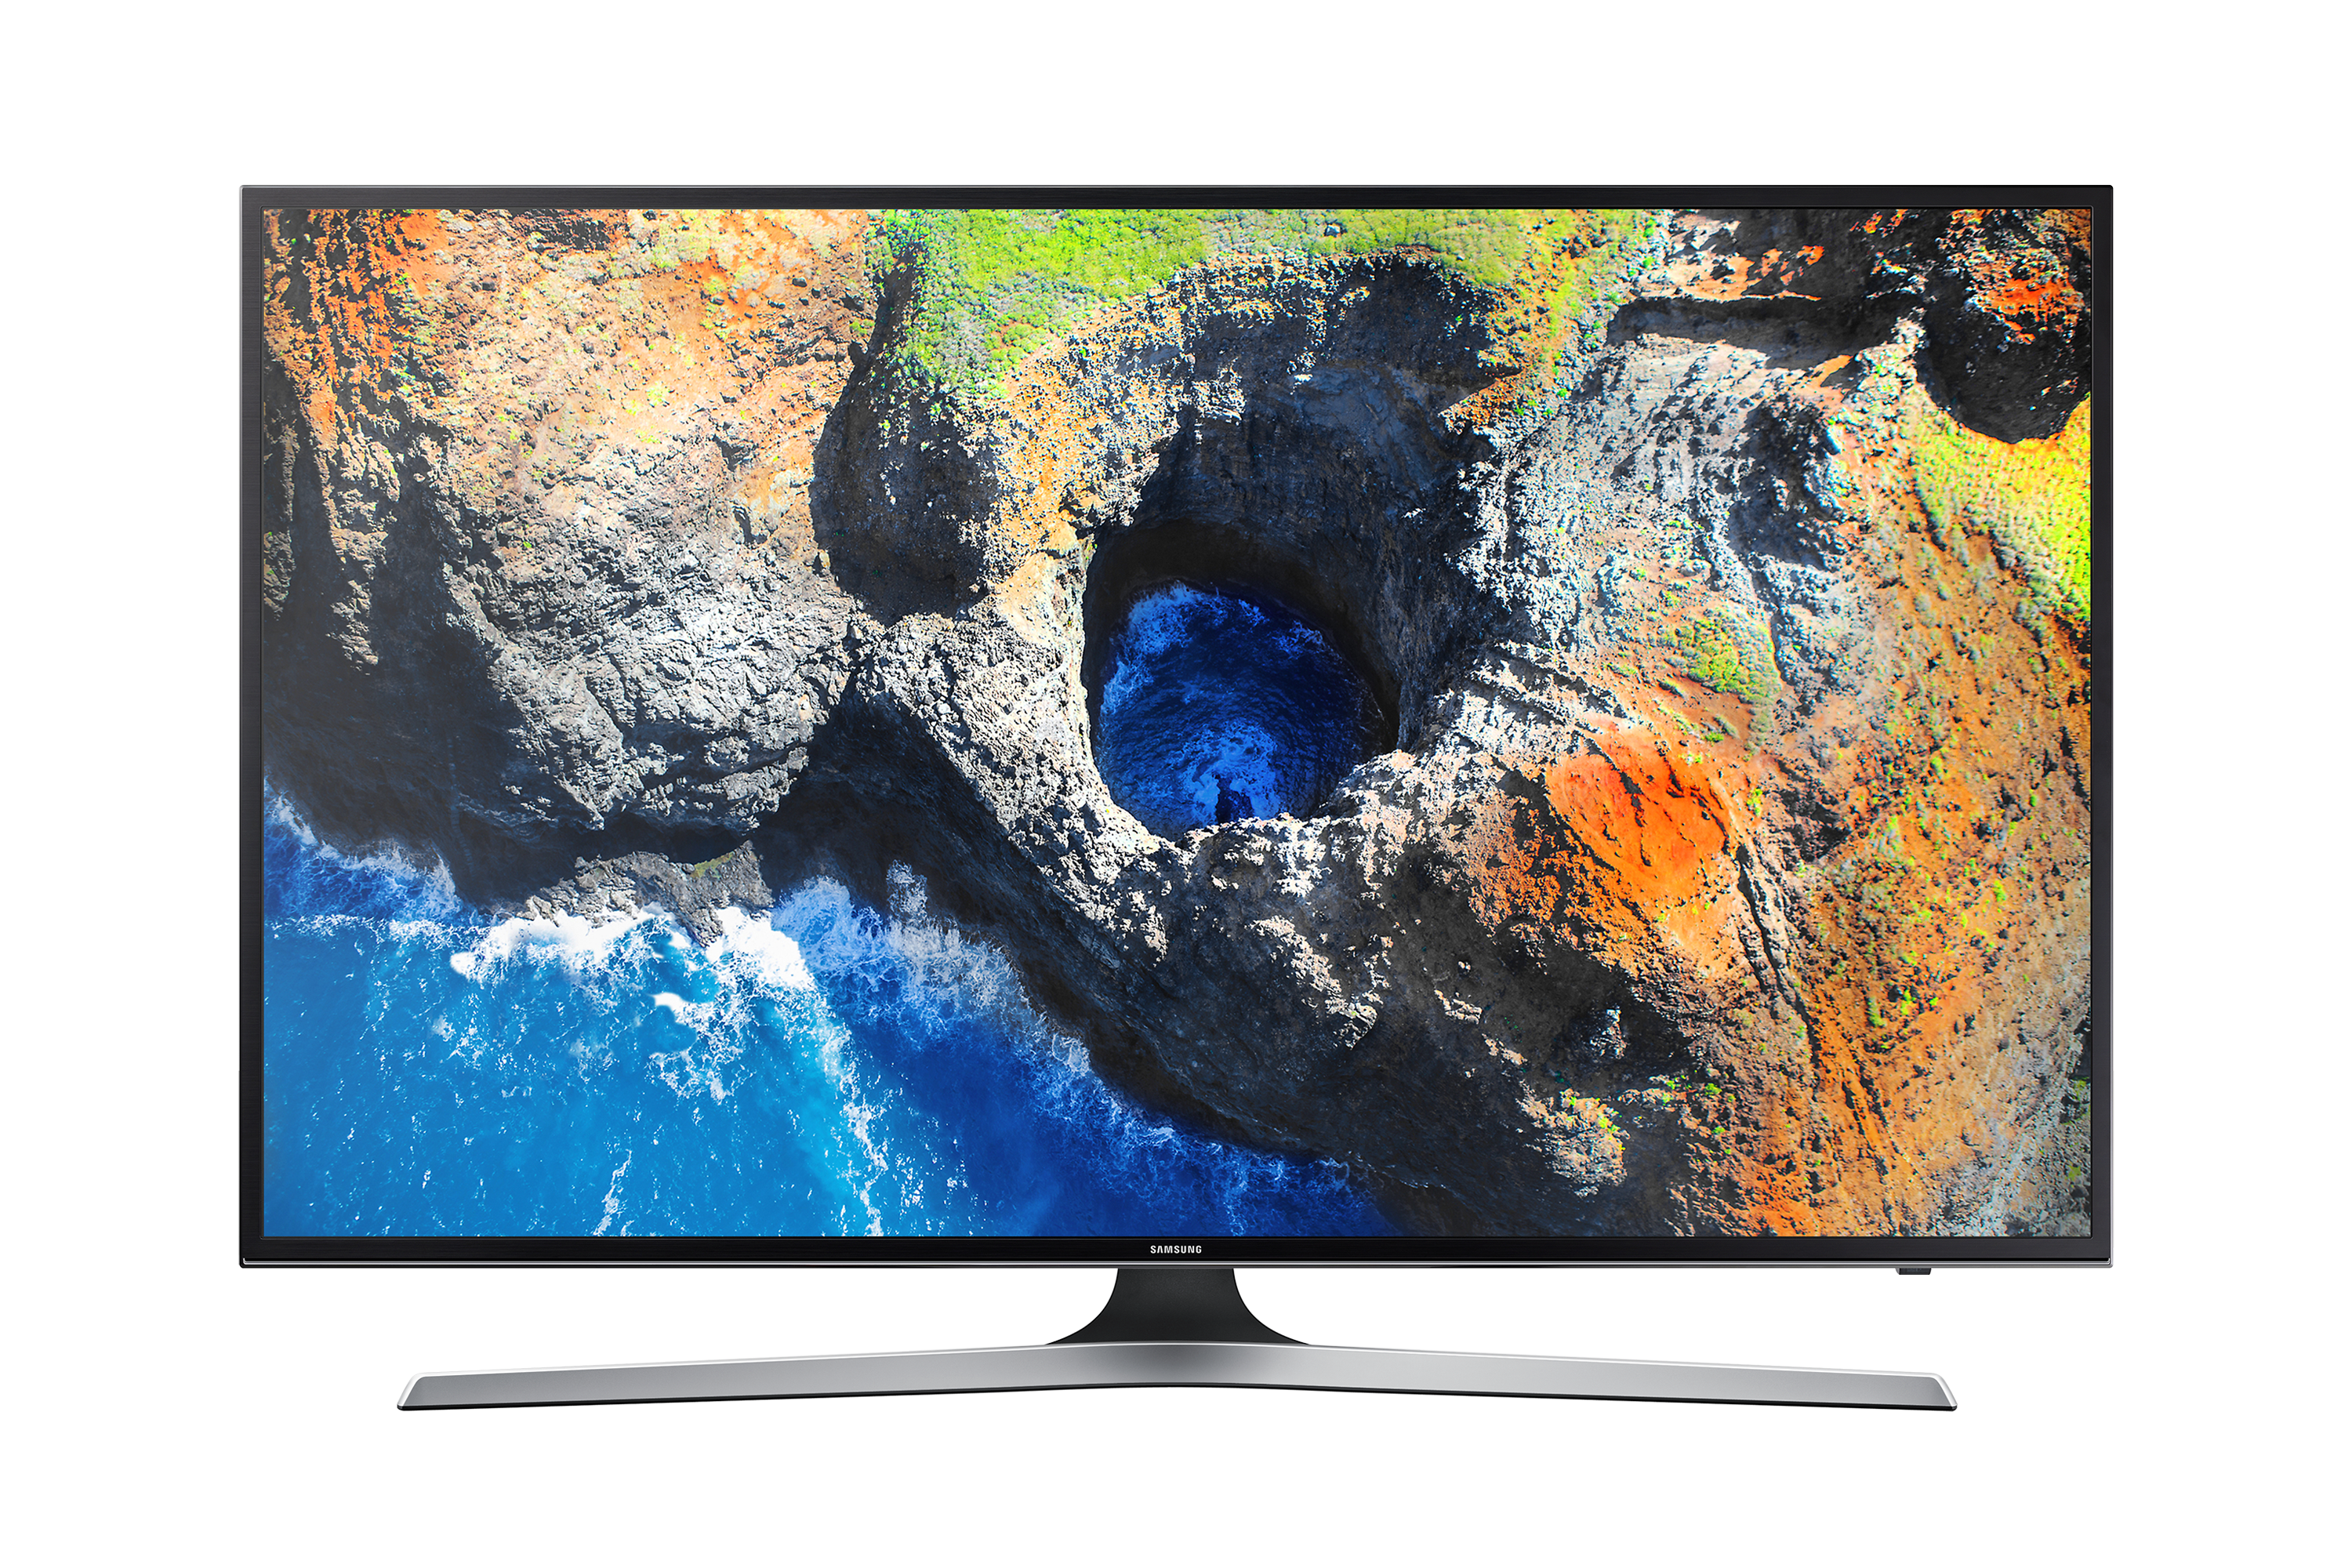 Samsung UN65KU630DF LED TV 64 BIT Driver